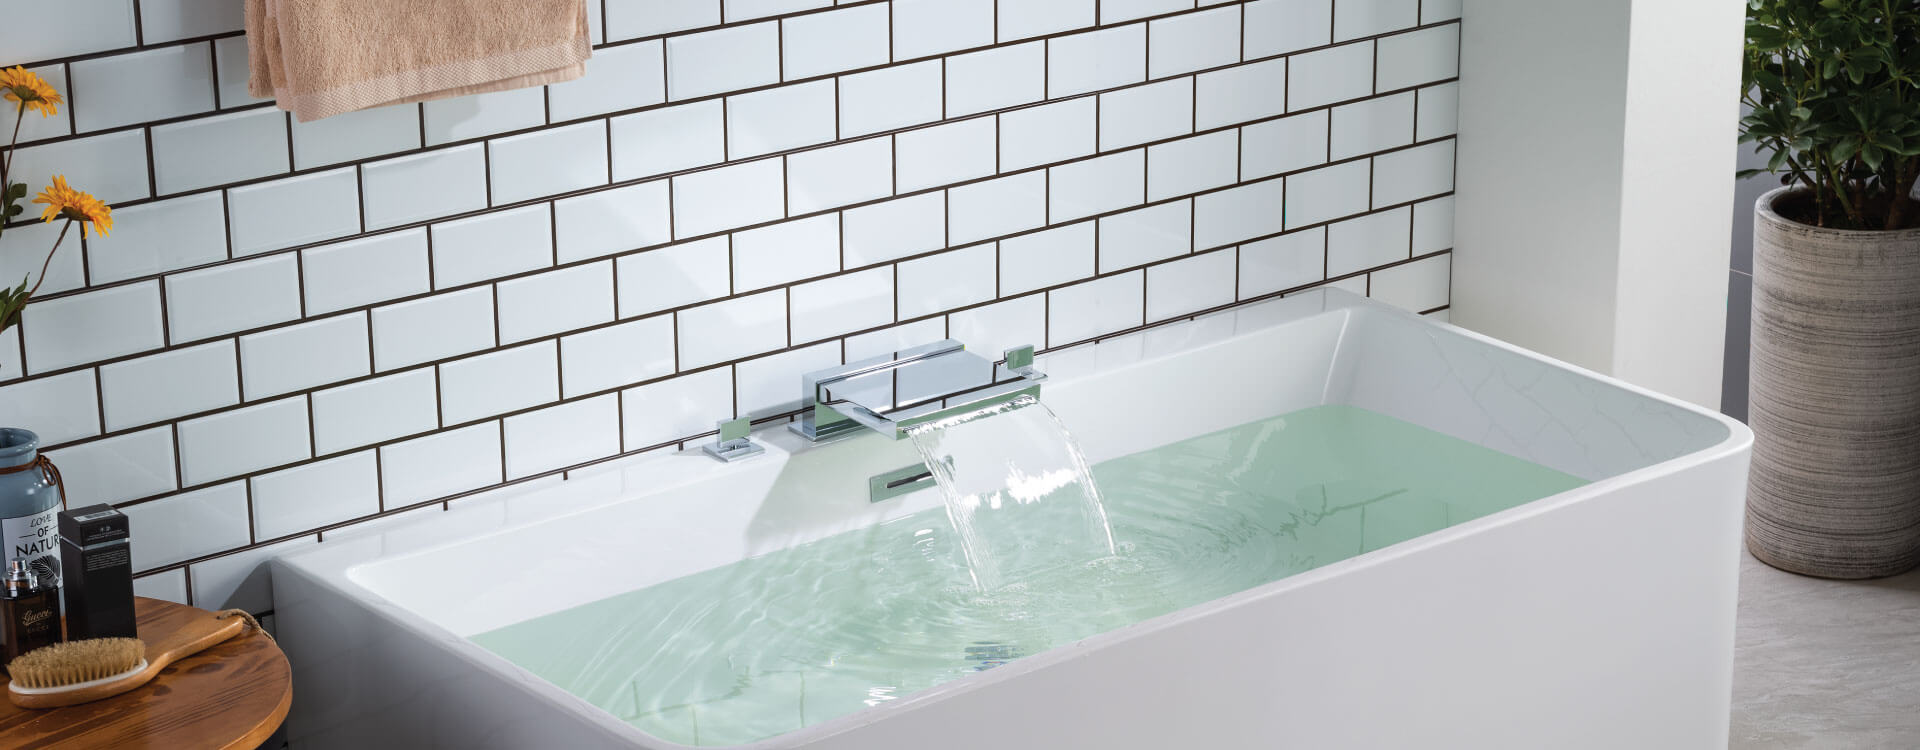 Waterfall tub faucet